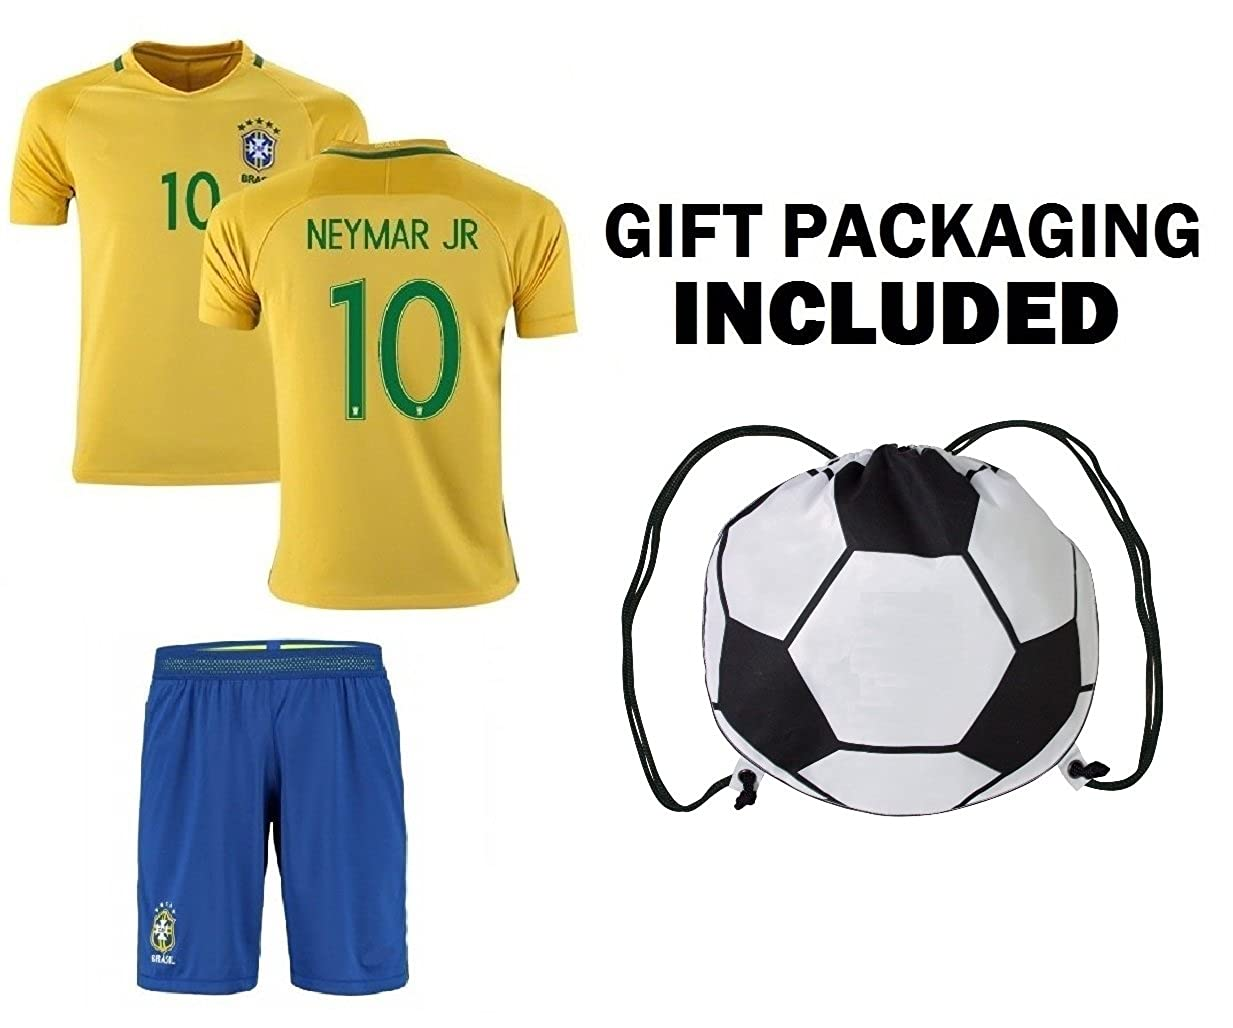 Youth NEYMAR JR # 10 BRAZIL World Cup Home jersey with shorts -Many sizes/ages BFA